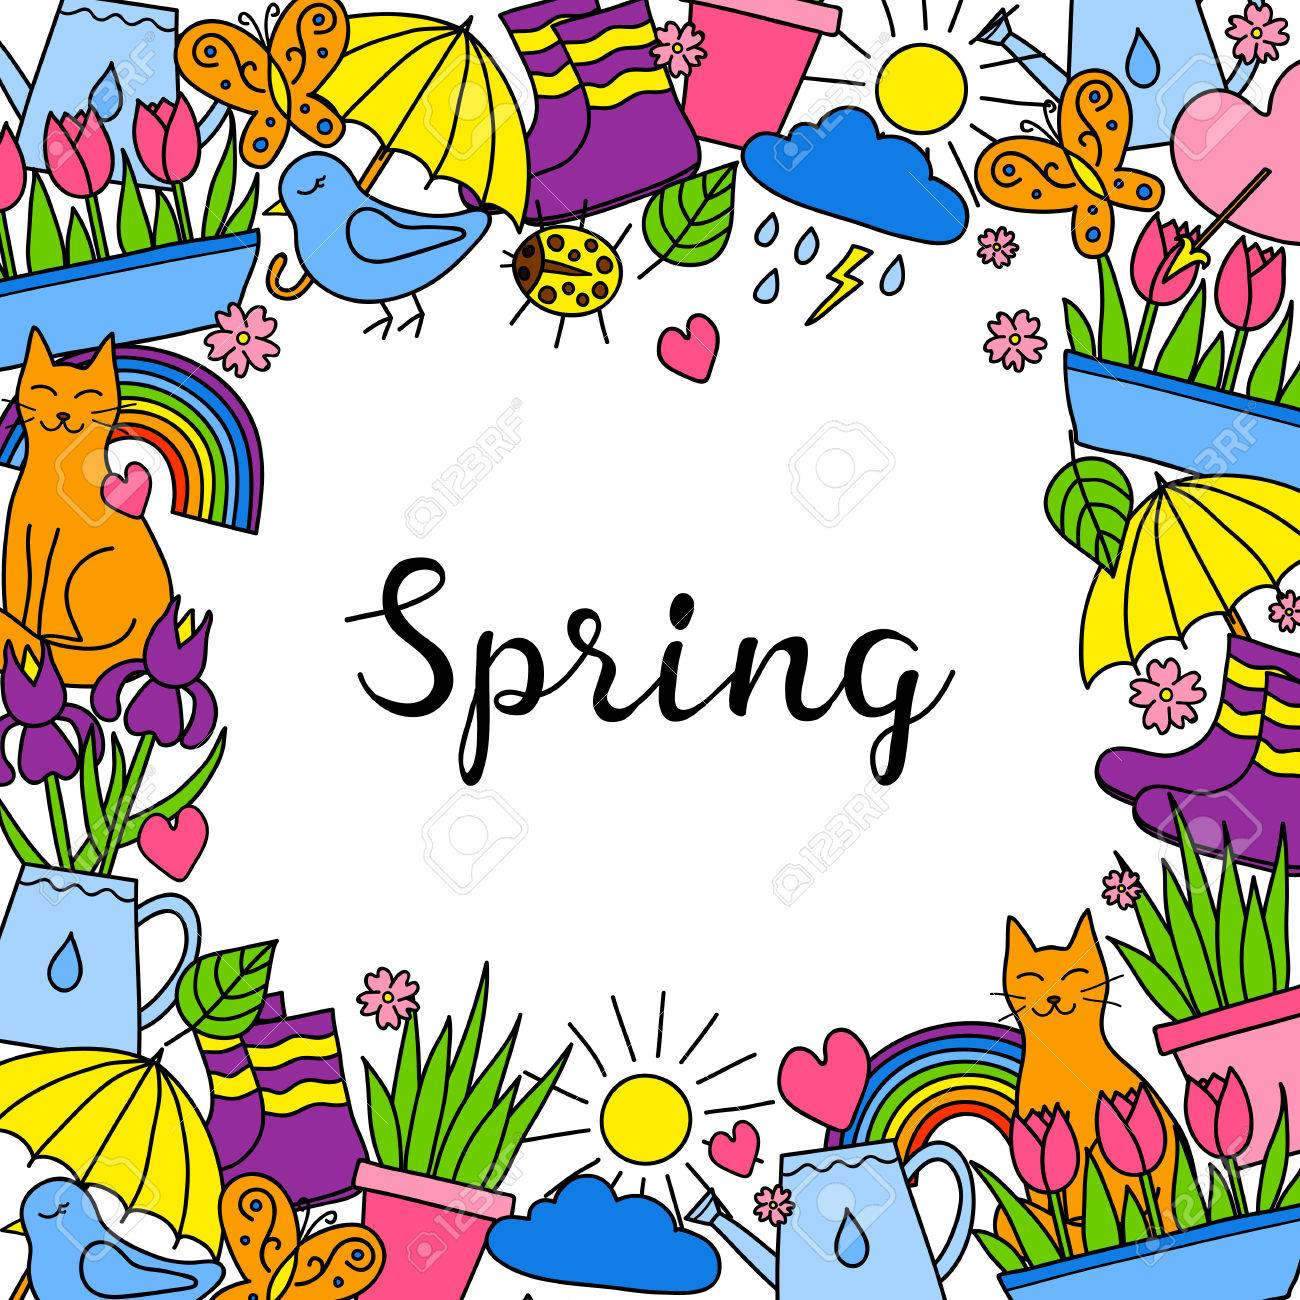 Background with doodle spring items.